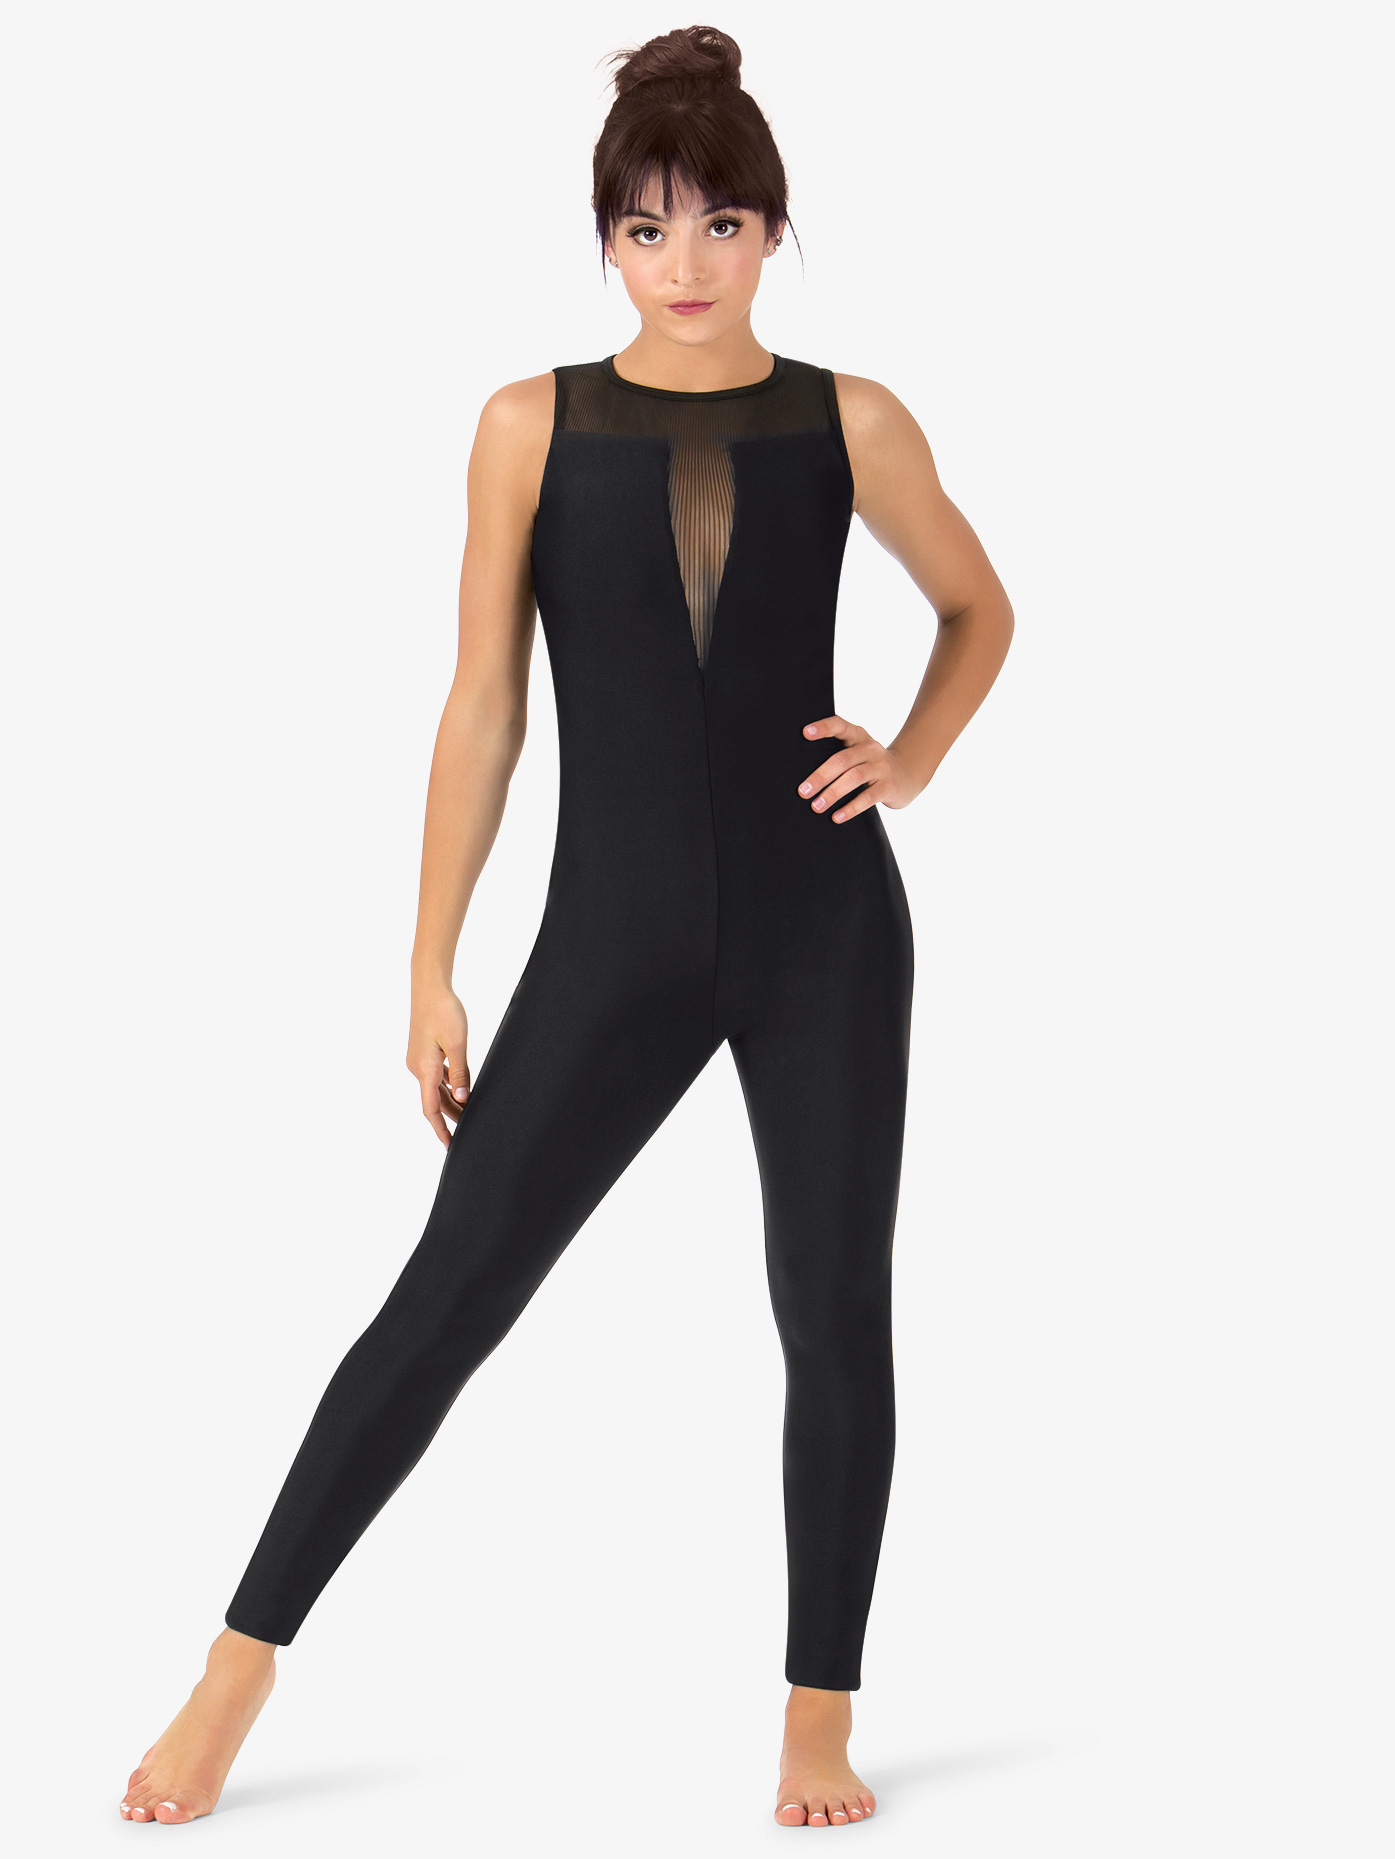 Natalie Womens Striped Mesh Dance Stirrup Unitard N9032